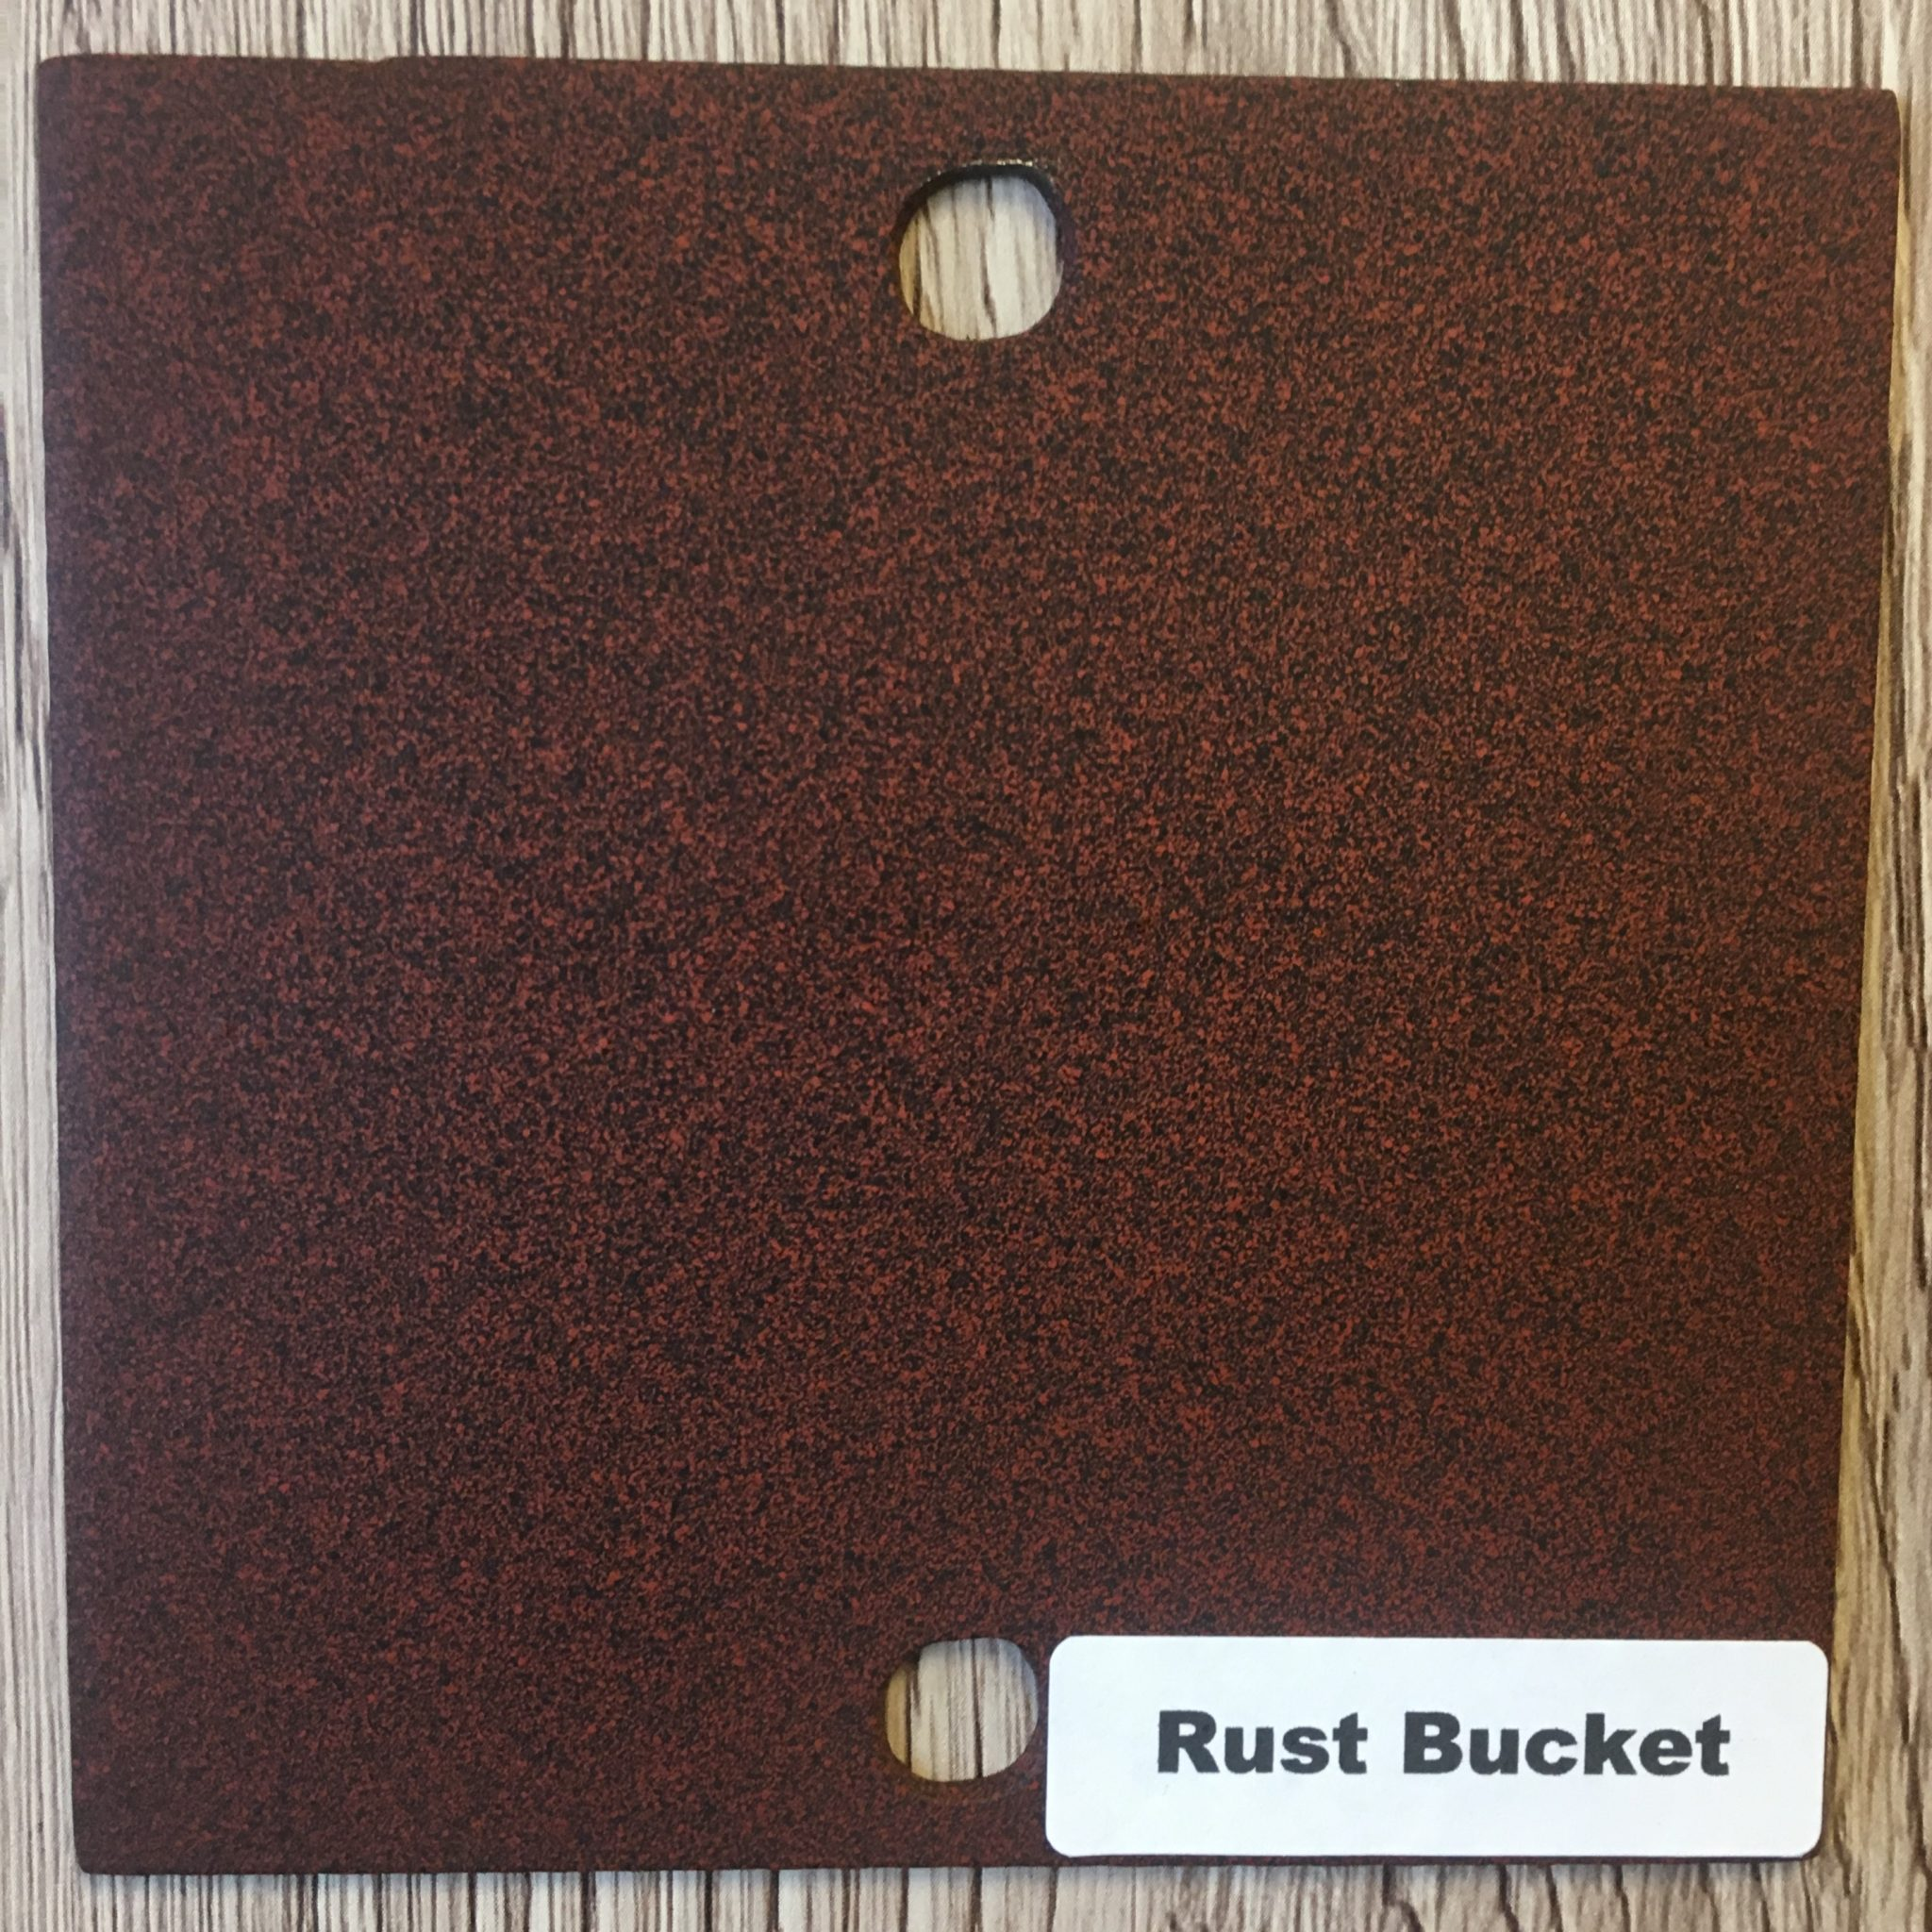 NEW- RUST BUCKET